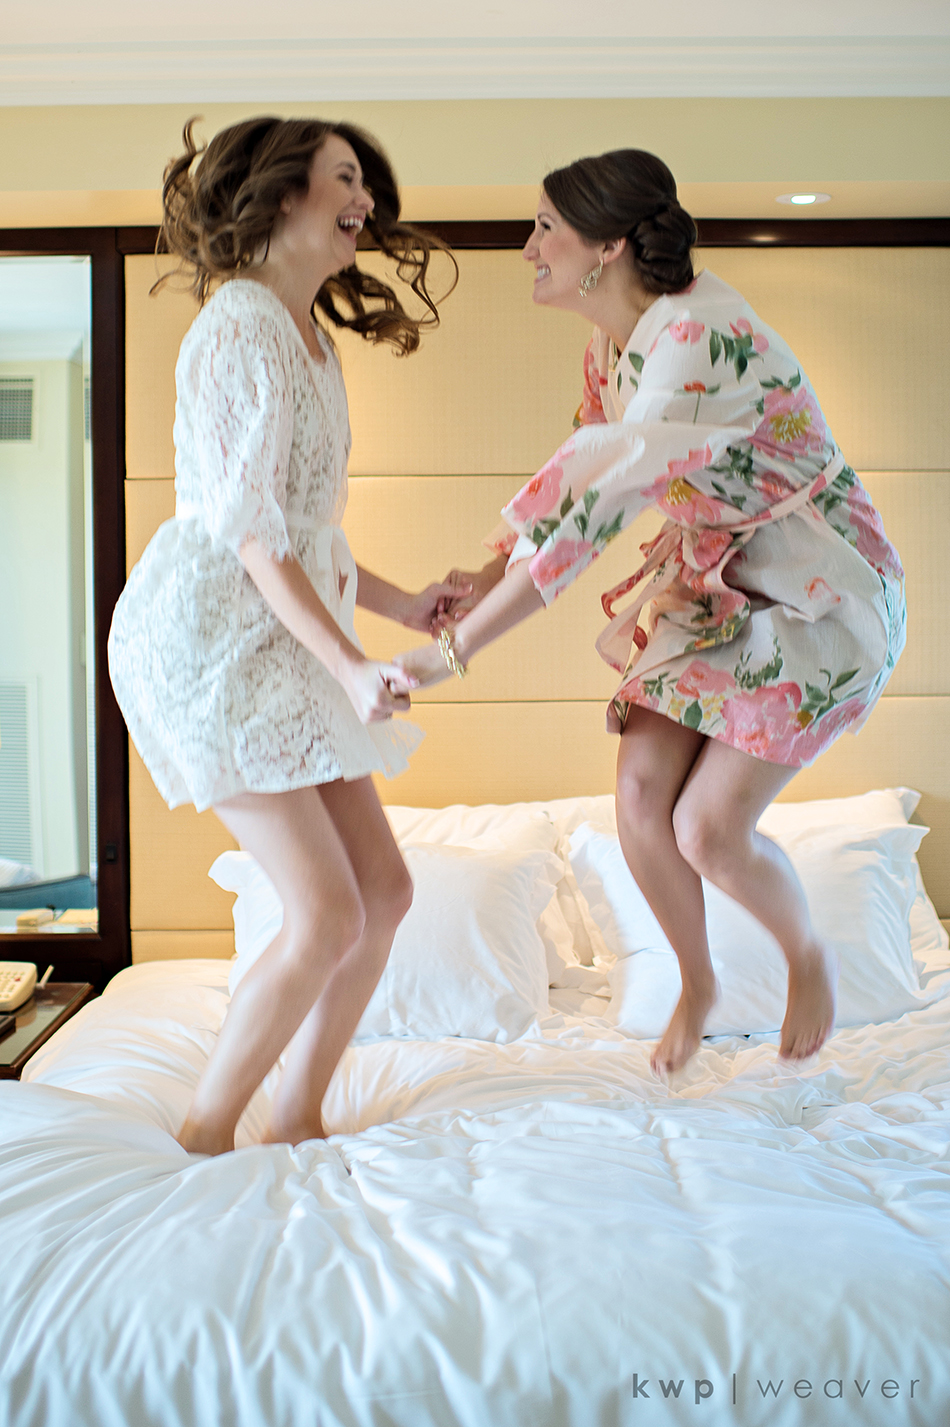 Sisters jumping on bed